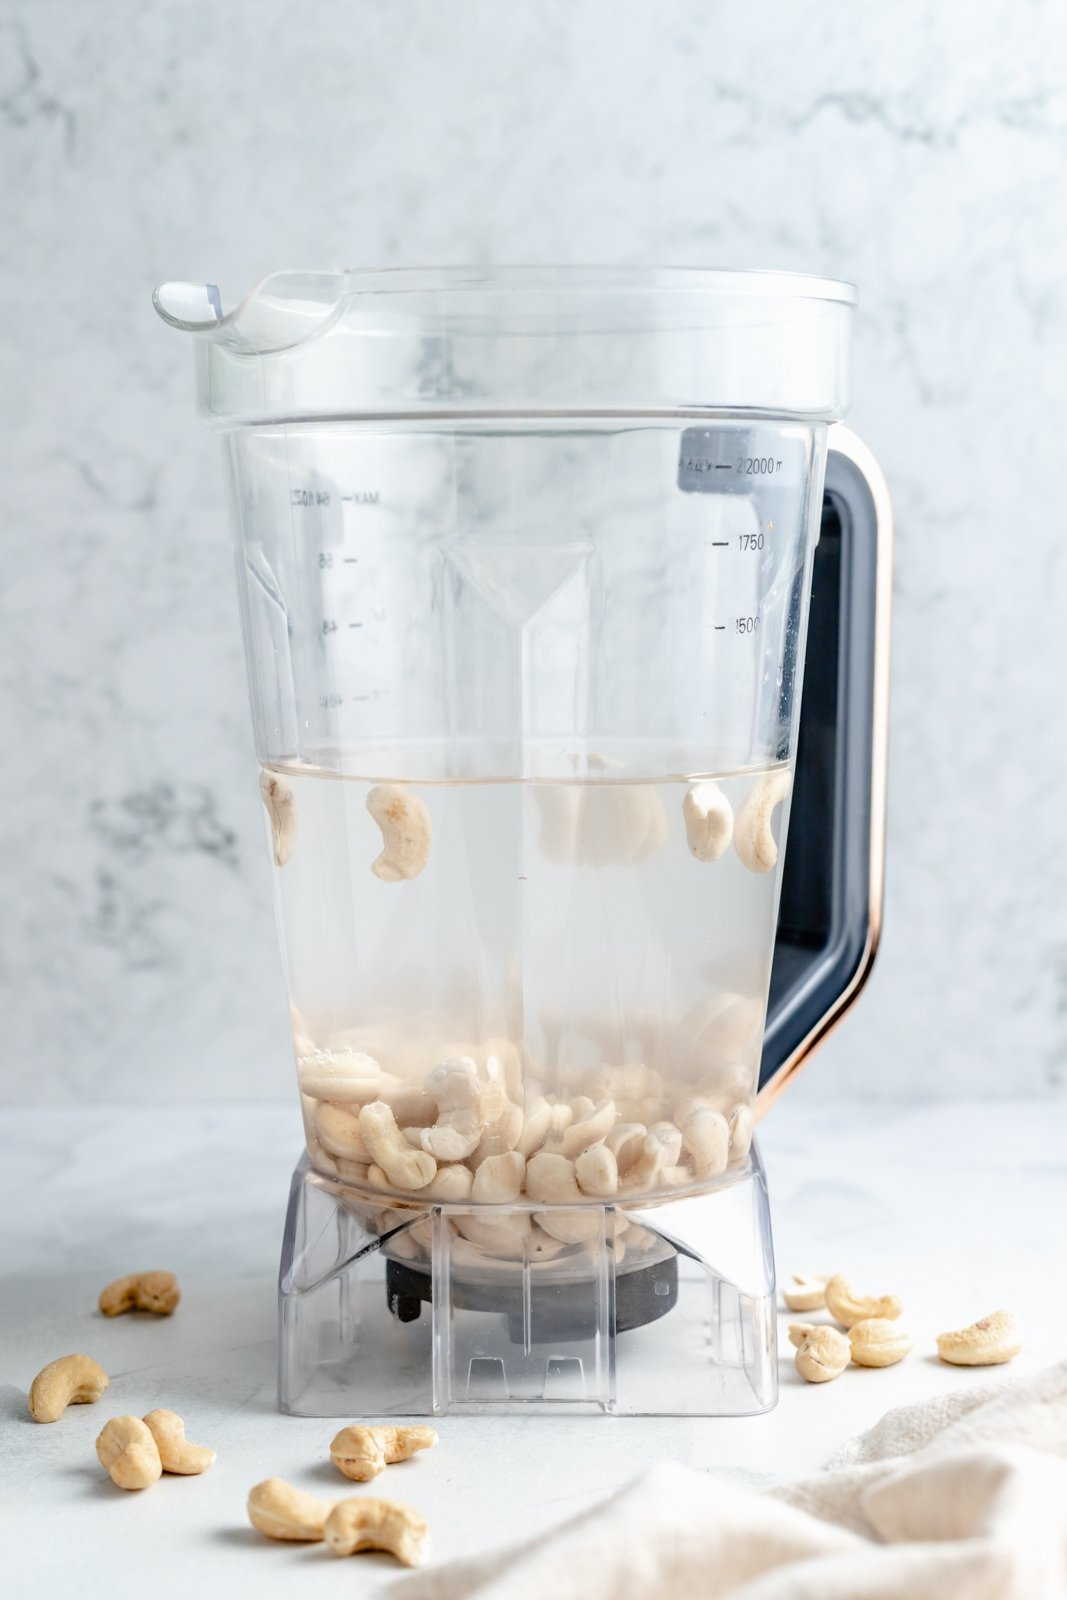 Ingredients for a cashew milk recipe in the mixer